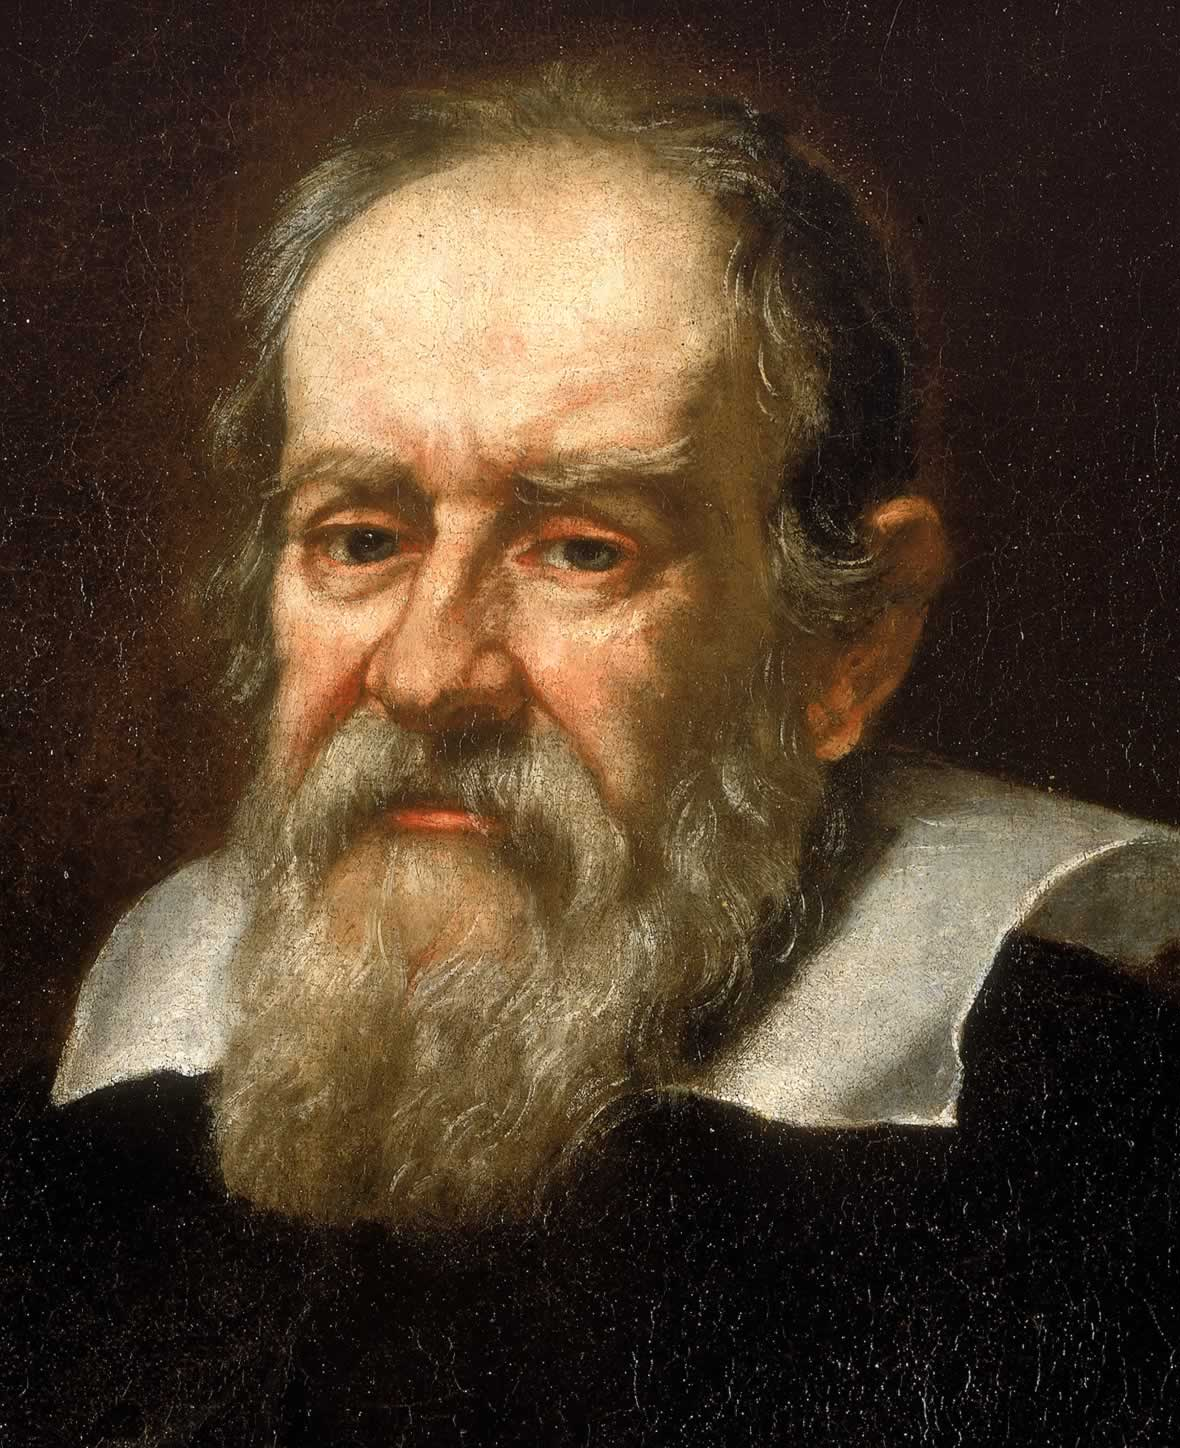 http://upload.wikimedia.org/wikipedia/commons/c/cc/Galileo.arp.300pix.jpg